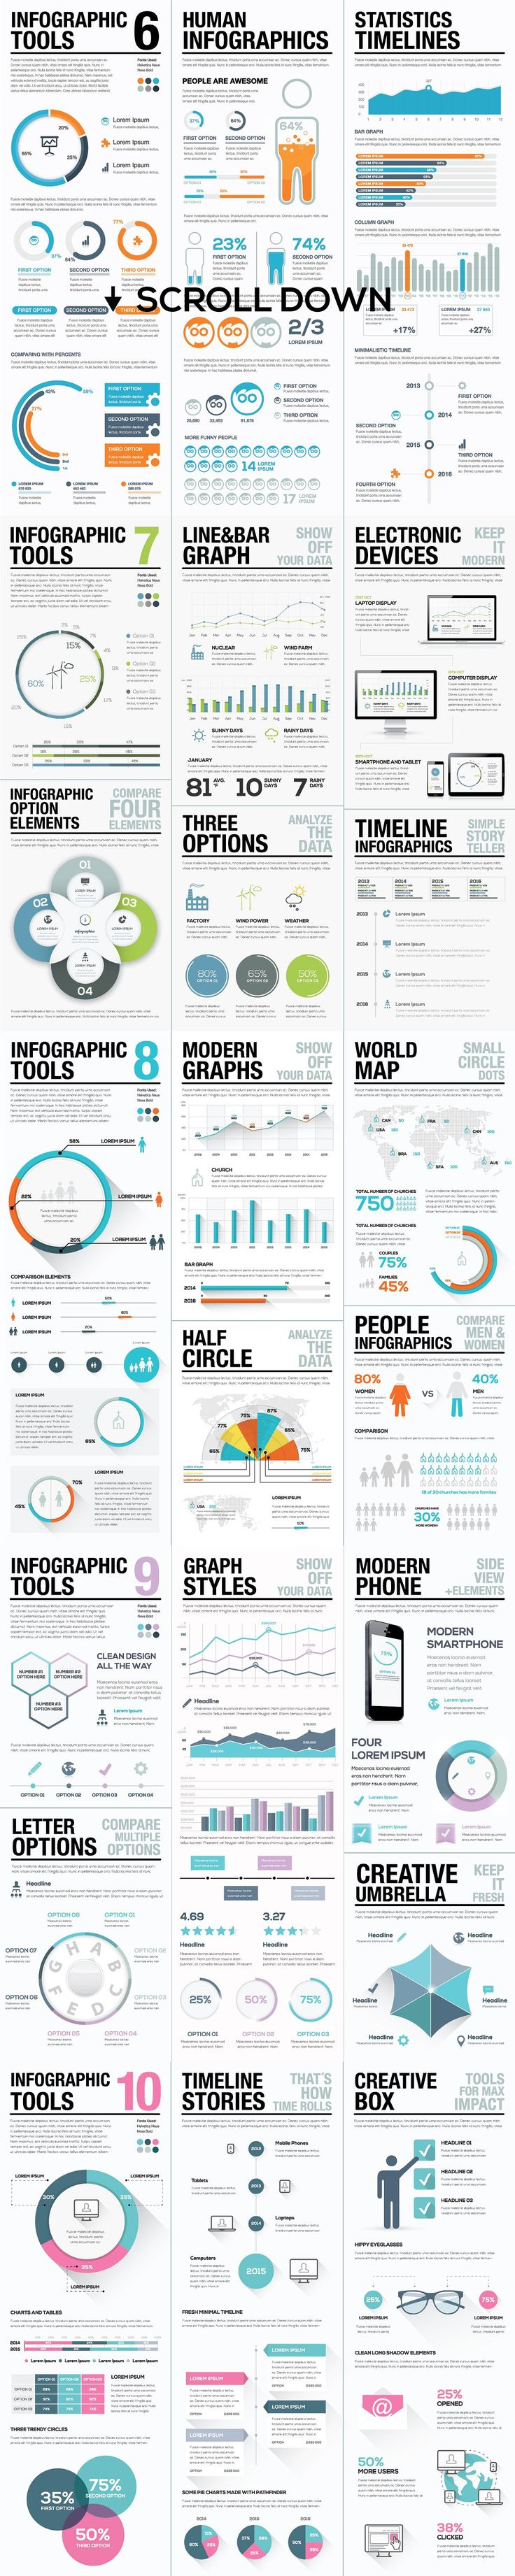 Business Intelligence Consultant Sample Resume Amazing 145 Best Business Inspo Images On Pinterest  Knowledge .